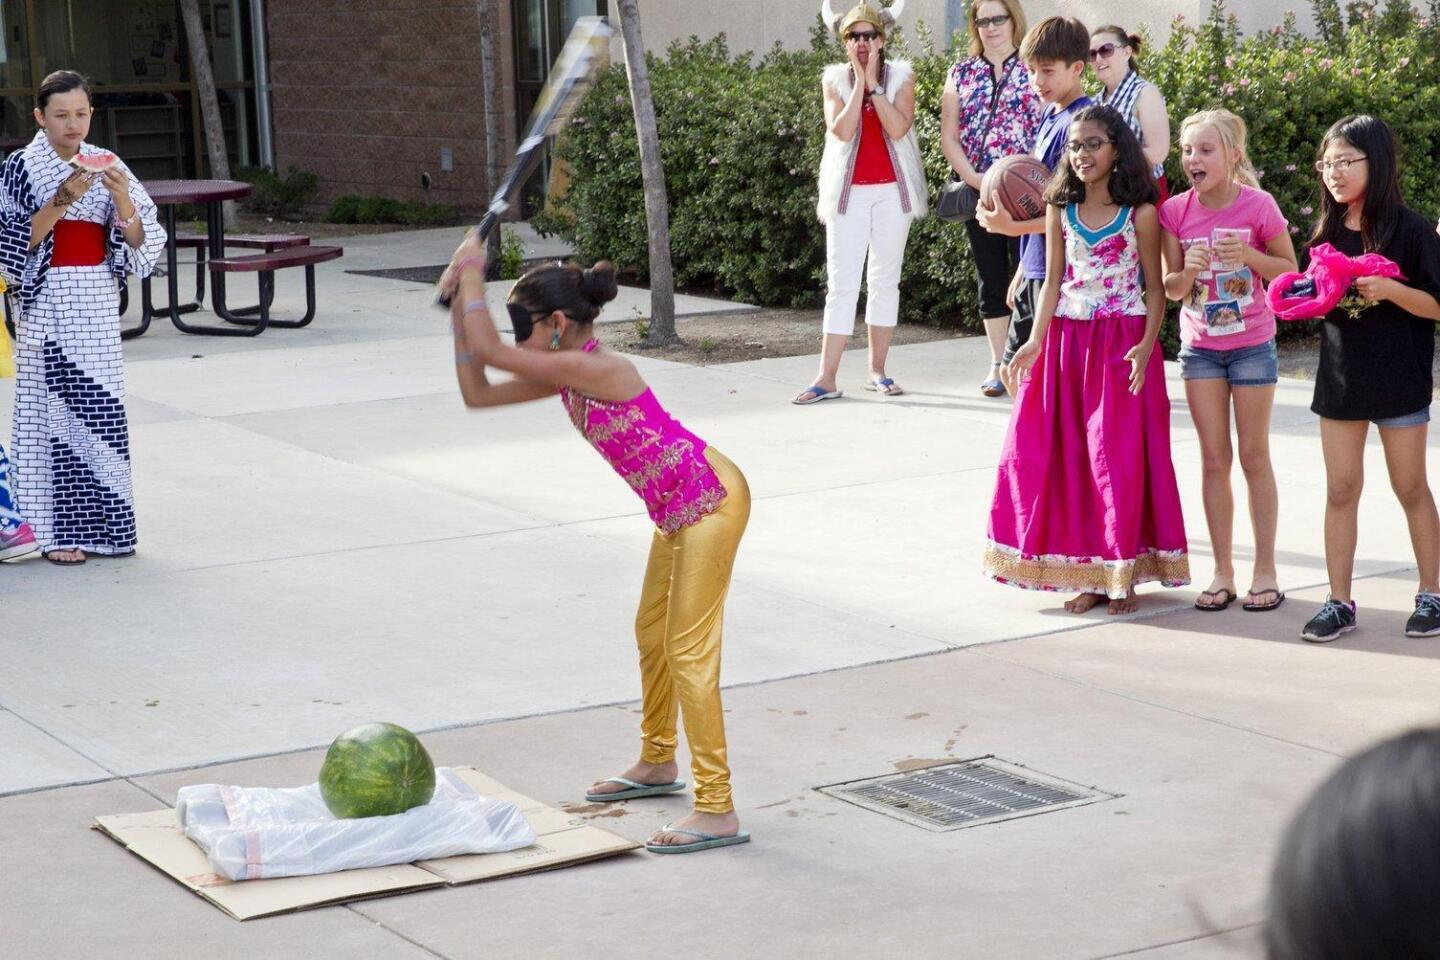 Sonia Khanvilkar takes a turn playing the Japanese game of watermelon smash